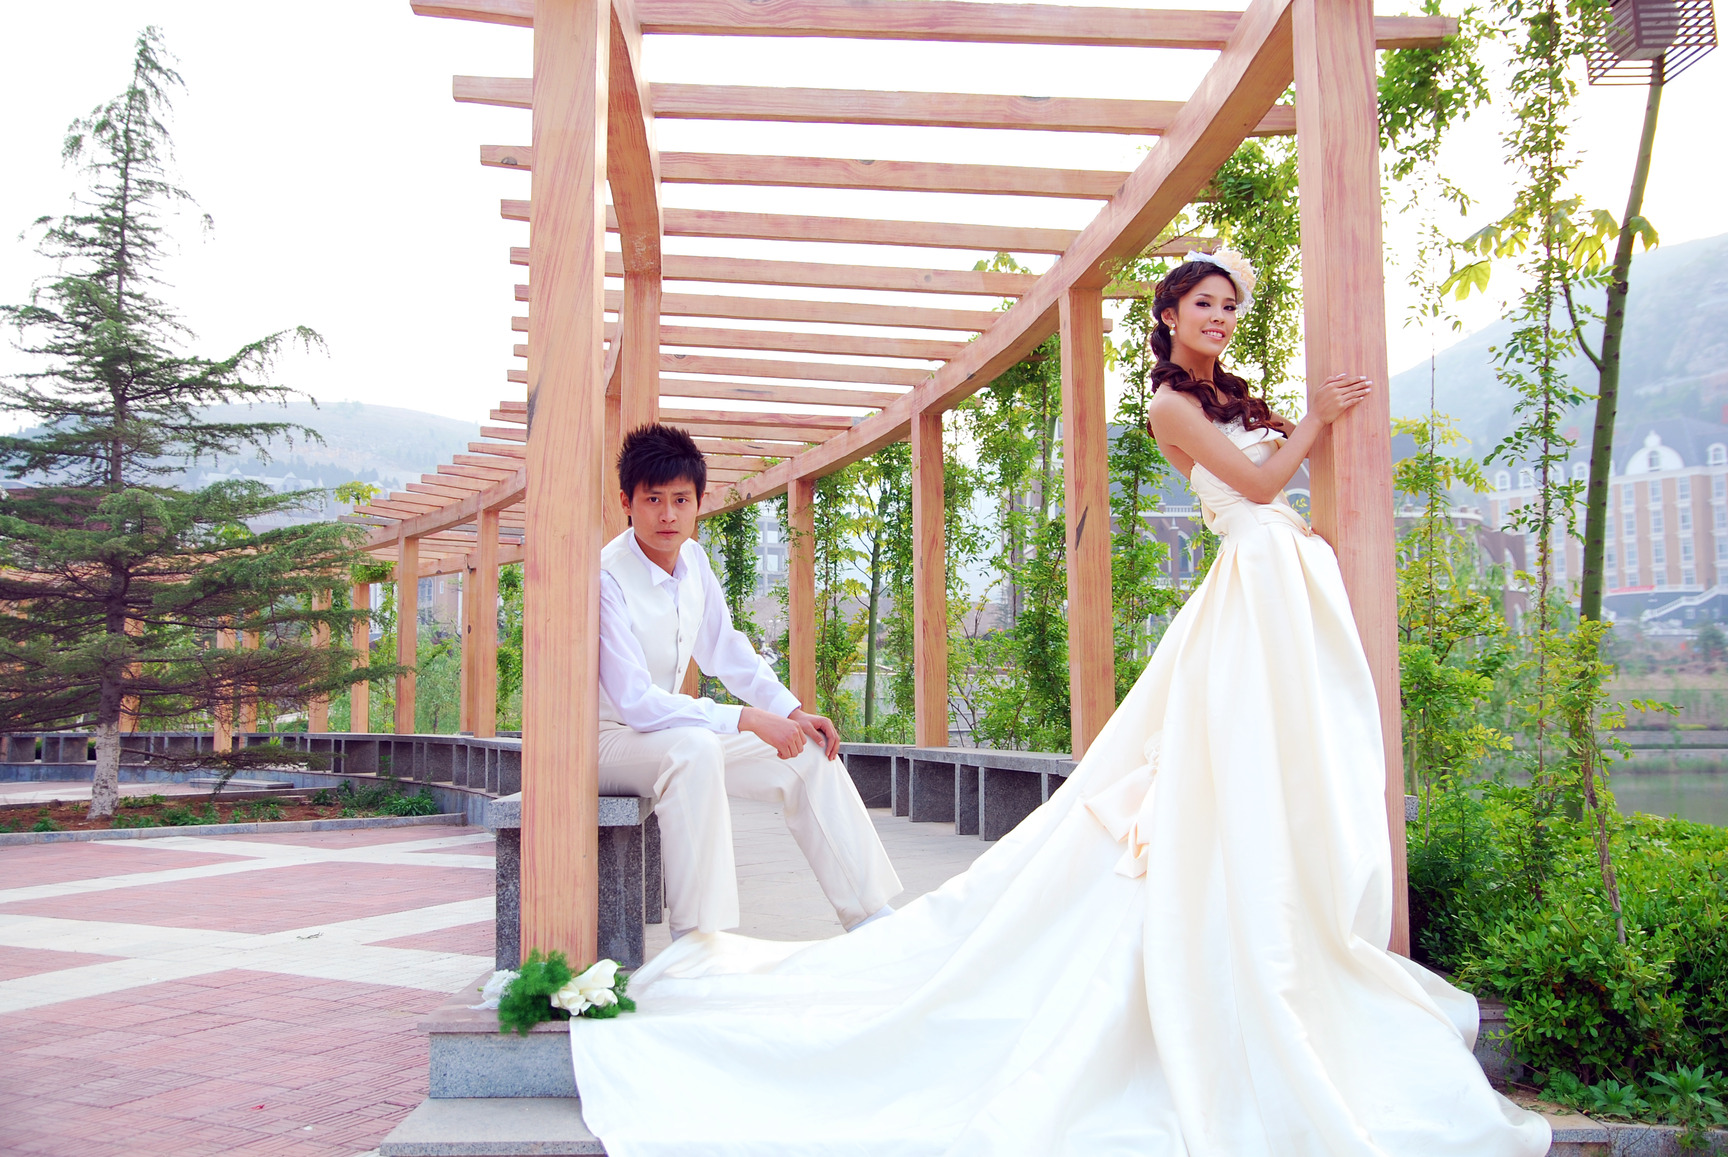 A Beautiful Bride and Groom Awaiting Ceremony